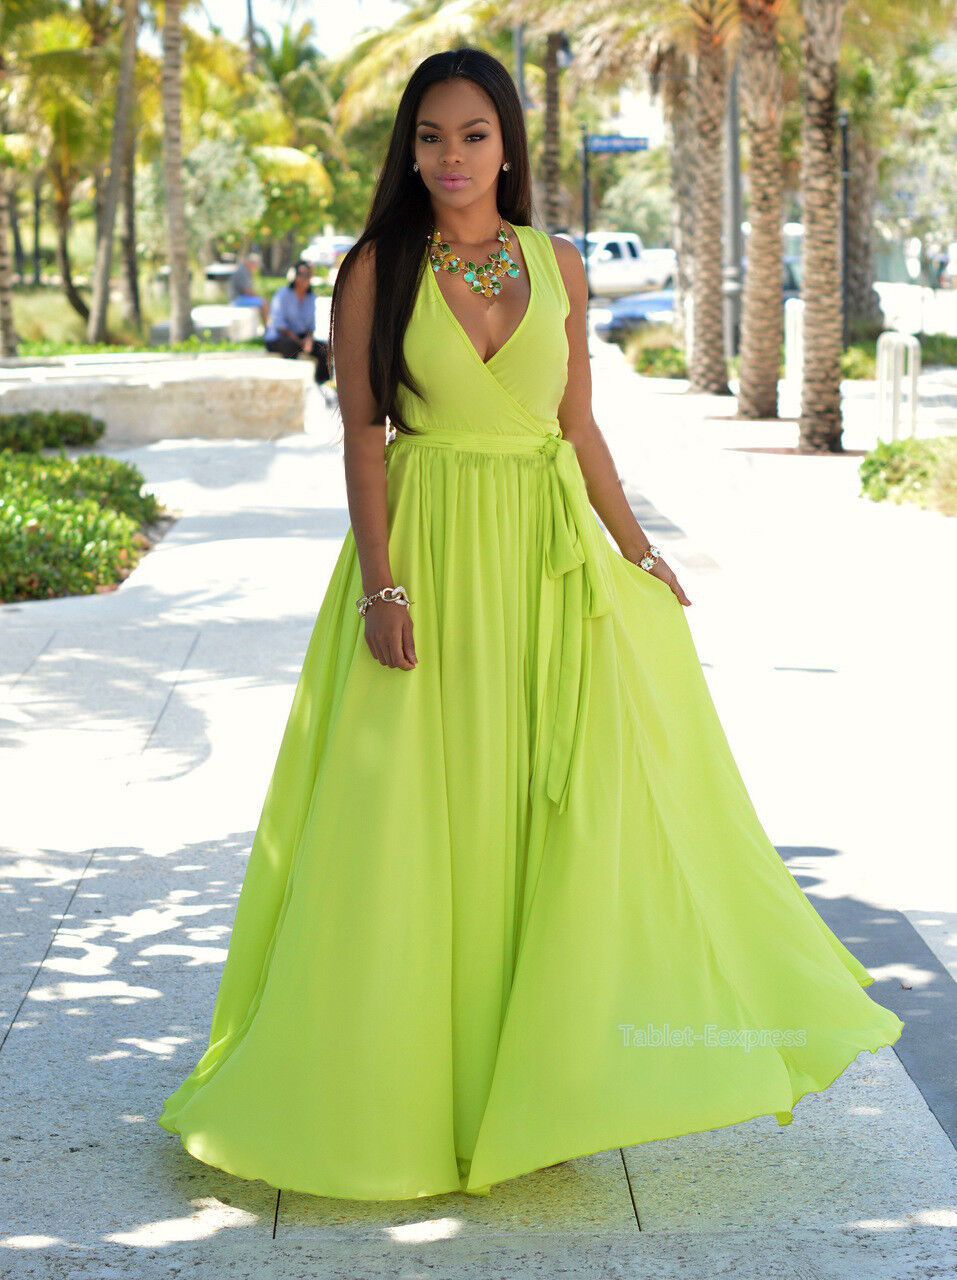 Trendy Dress Solid Color Girls Beach Summer Maxi Holiday Dress Long ...